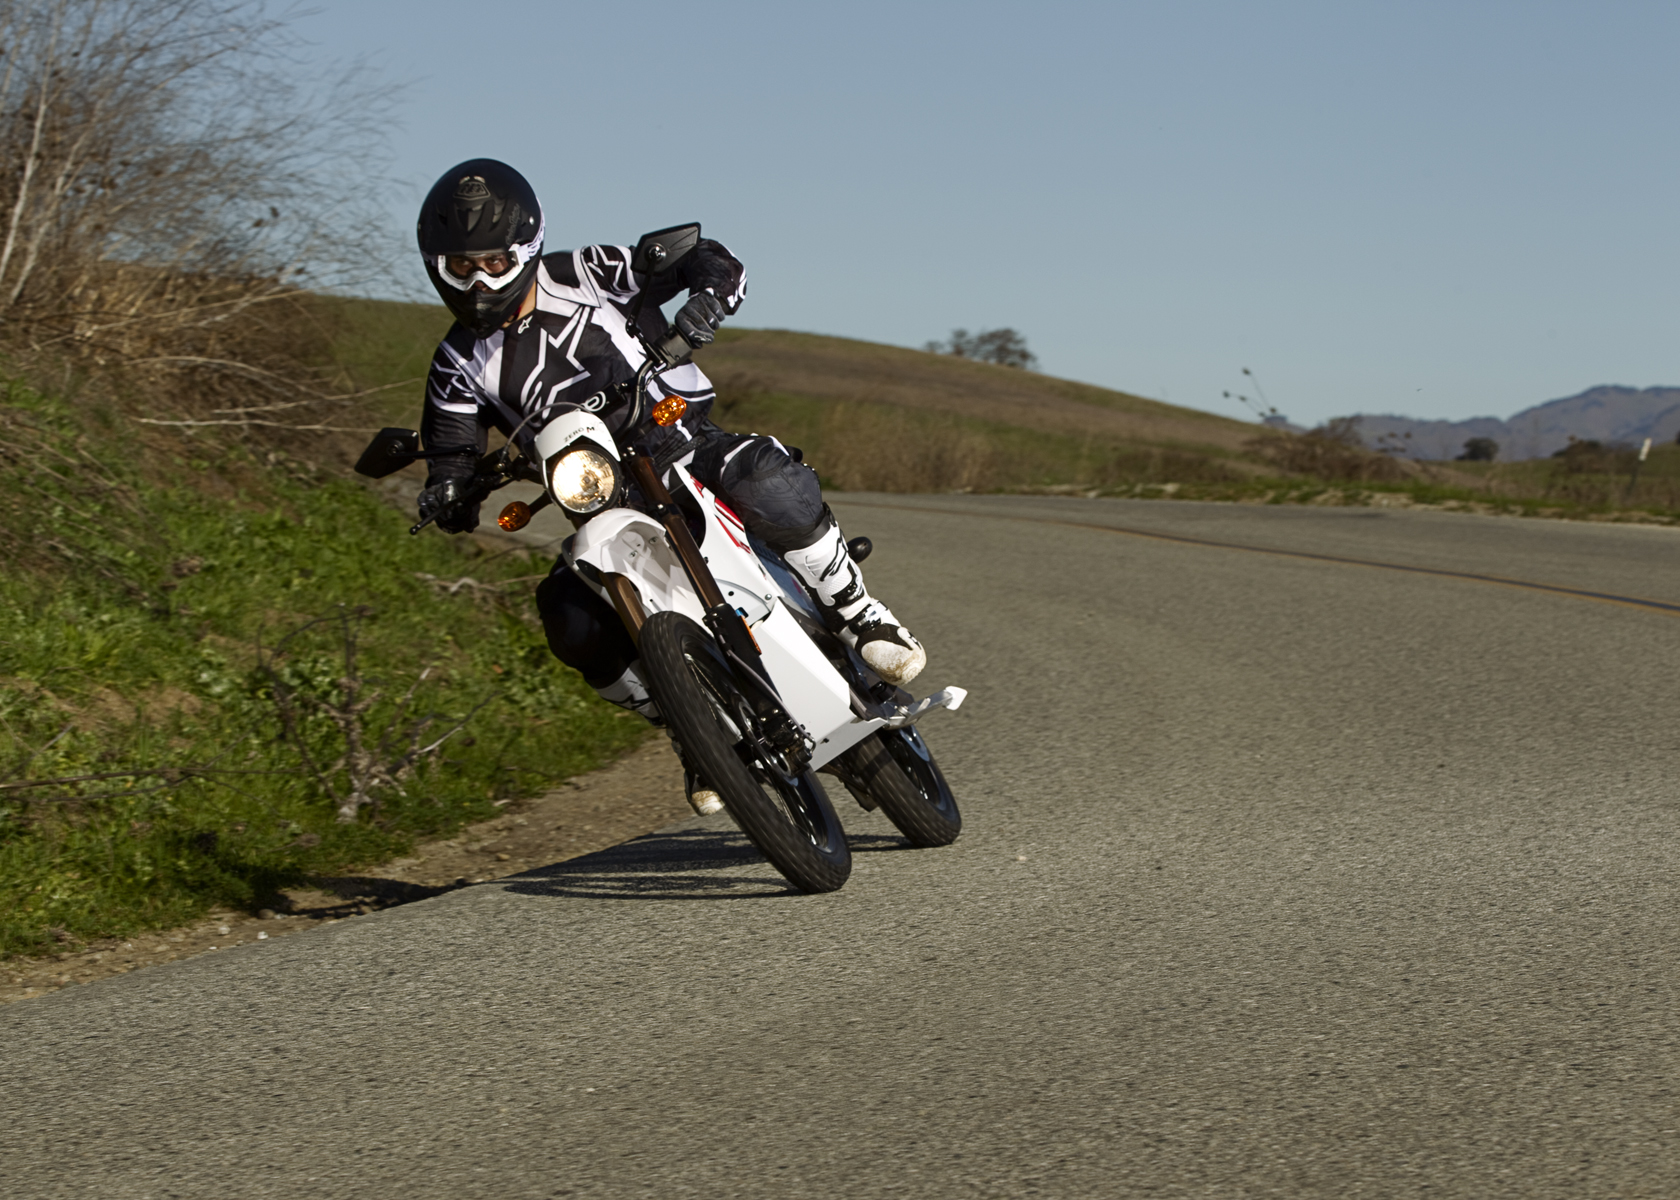 2011 Zero MX Electric Motorcycle: Lean Right Around Corner